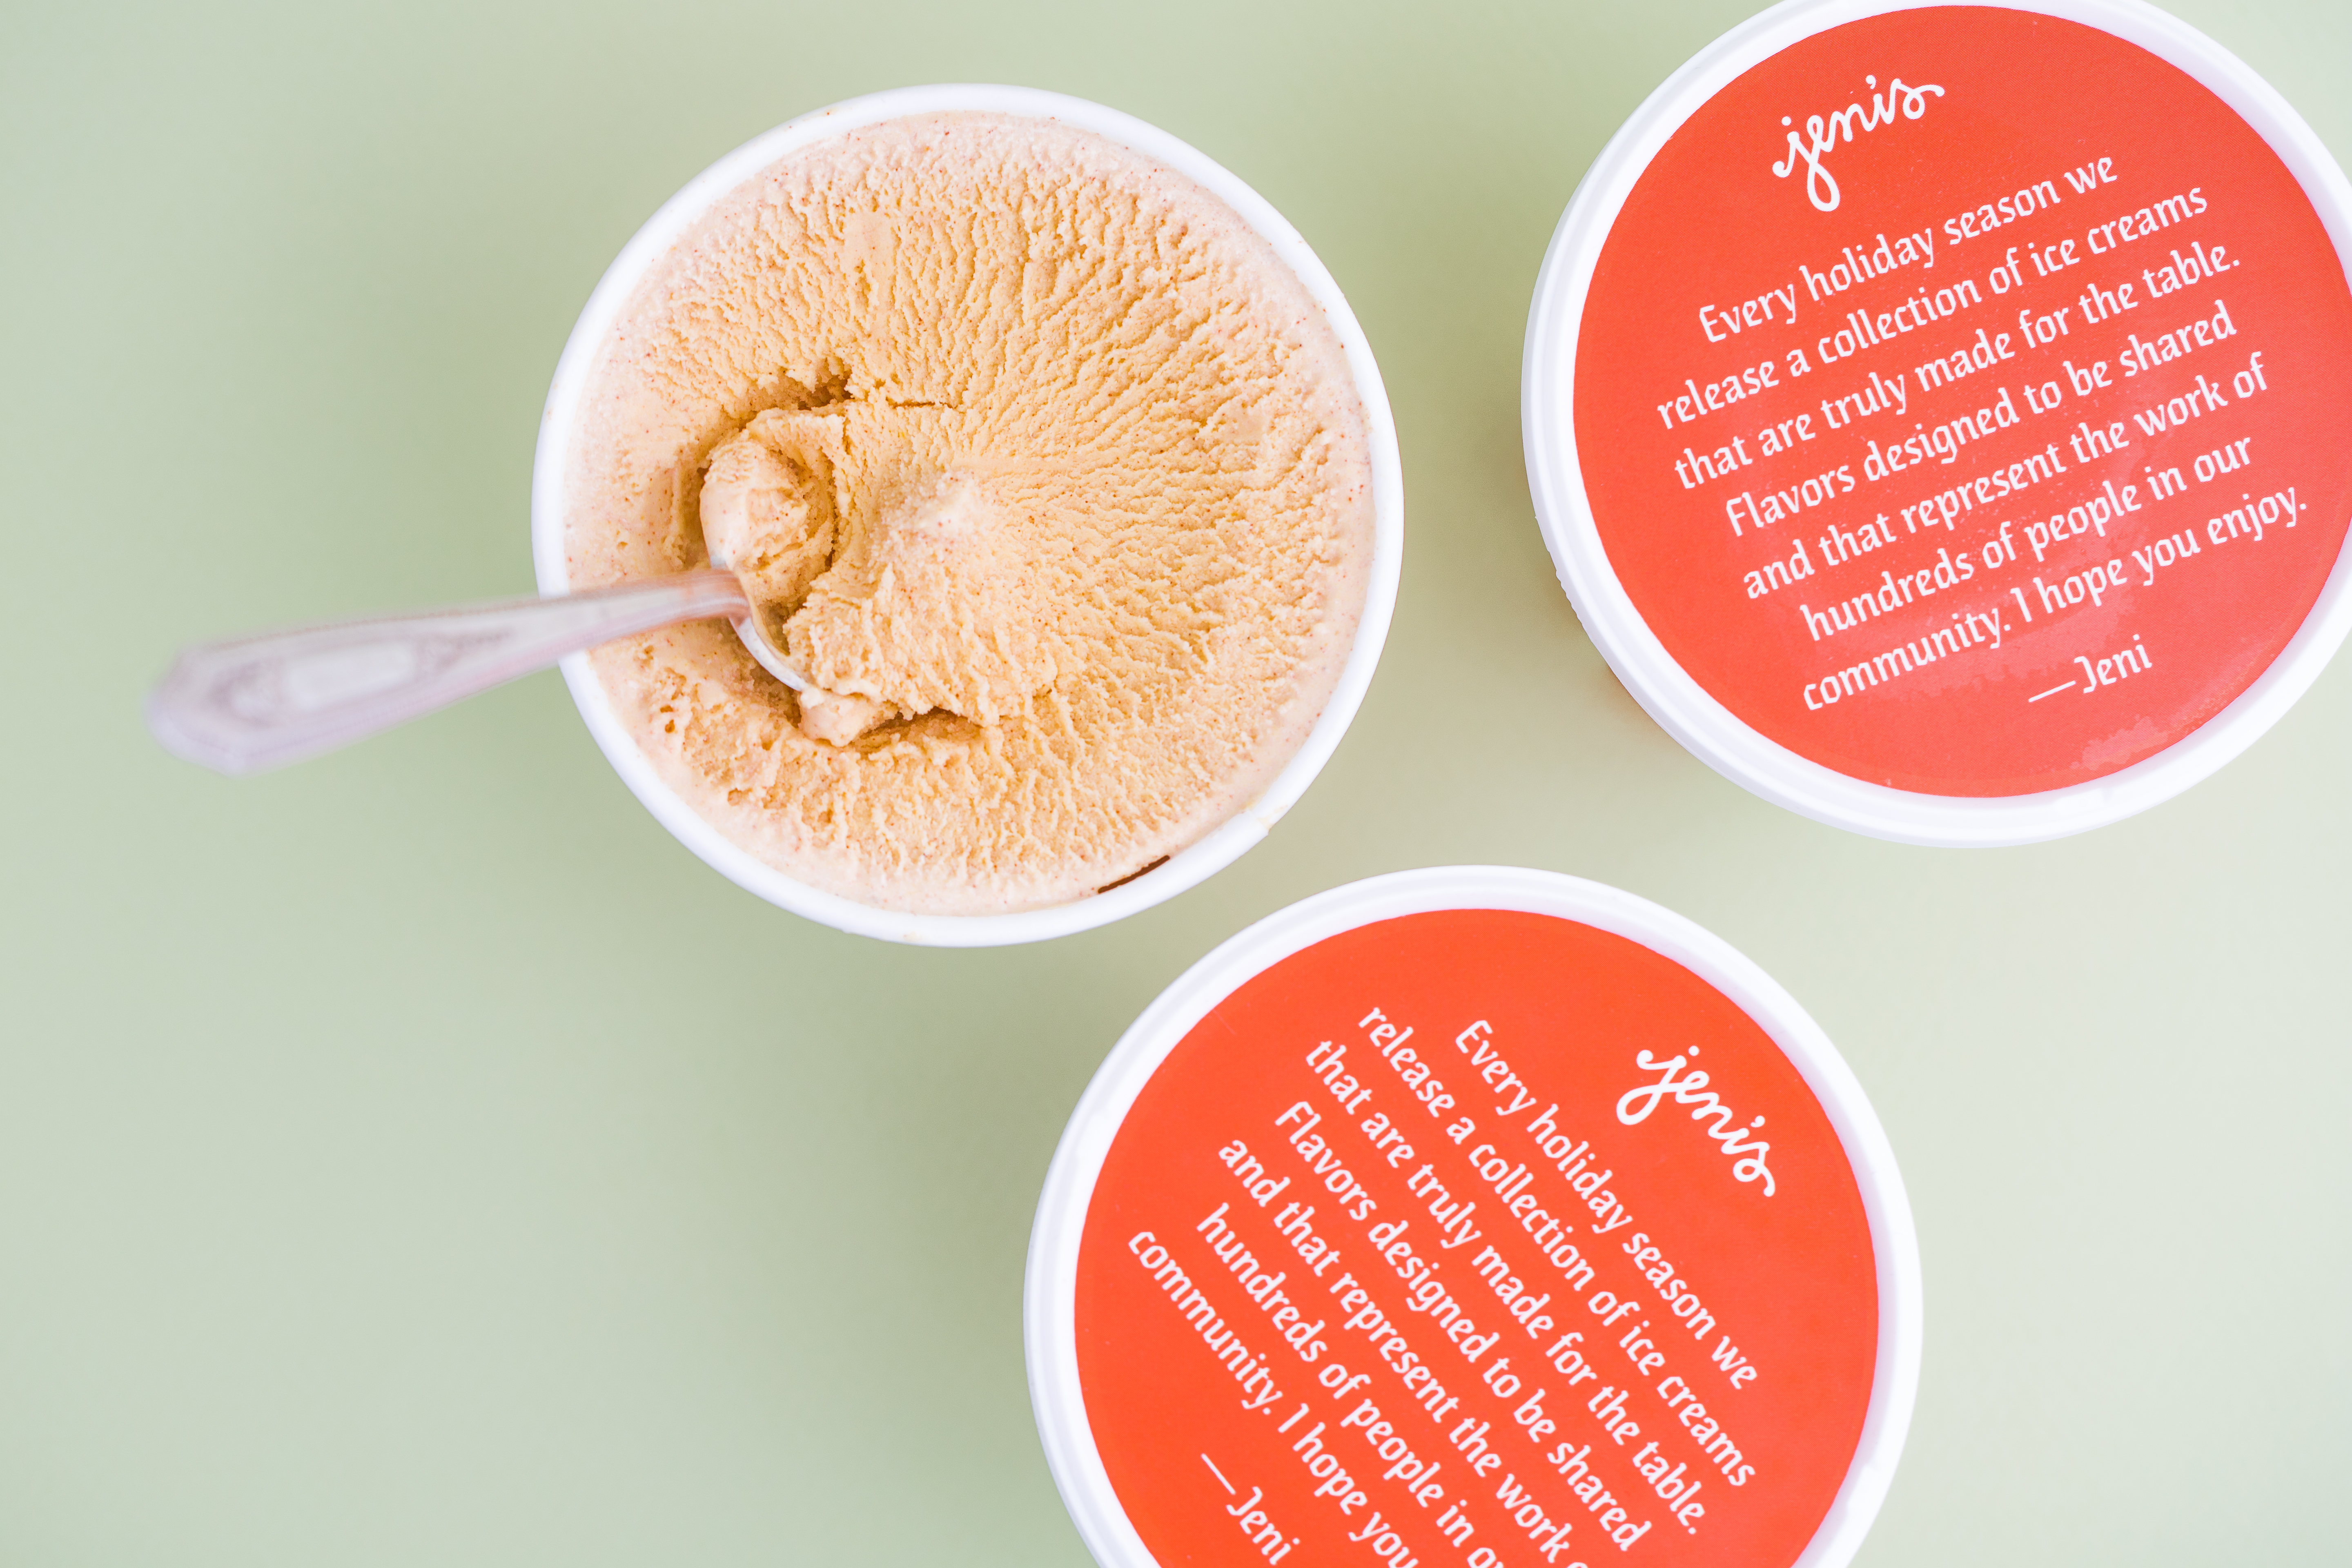 Jeni's officially opened her first east coast shop on September 25. To celebrate, Jeni's Splendid Ice Creams will host a grand opening on October 5 and will serve up FREE ice cream to all guests that stop by the shop between 7 p.m. and 11 p.m. Expect artisanal flavors like Pistacchio Honey, Churro (a cinnamon-infused ice cream speckled with bits of toffee and pastry), Middle West Whiskey & Pecans,  Sweet Potato and Roasted Marshmallow and -- of course -- her famous flavor, Salted Caramel. (Image: Courtesy Jeni's Splendid Ice Creams)